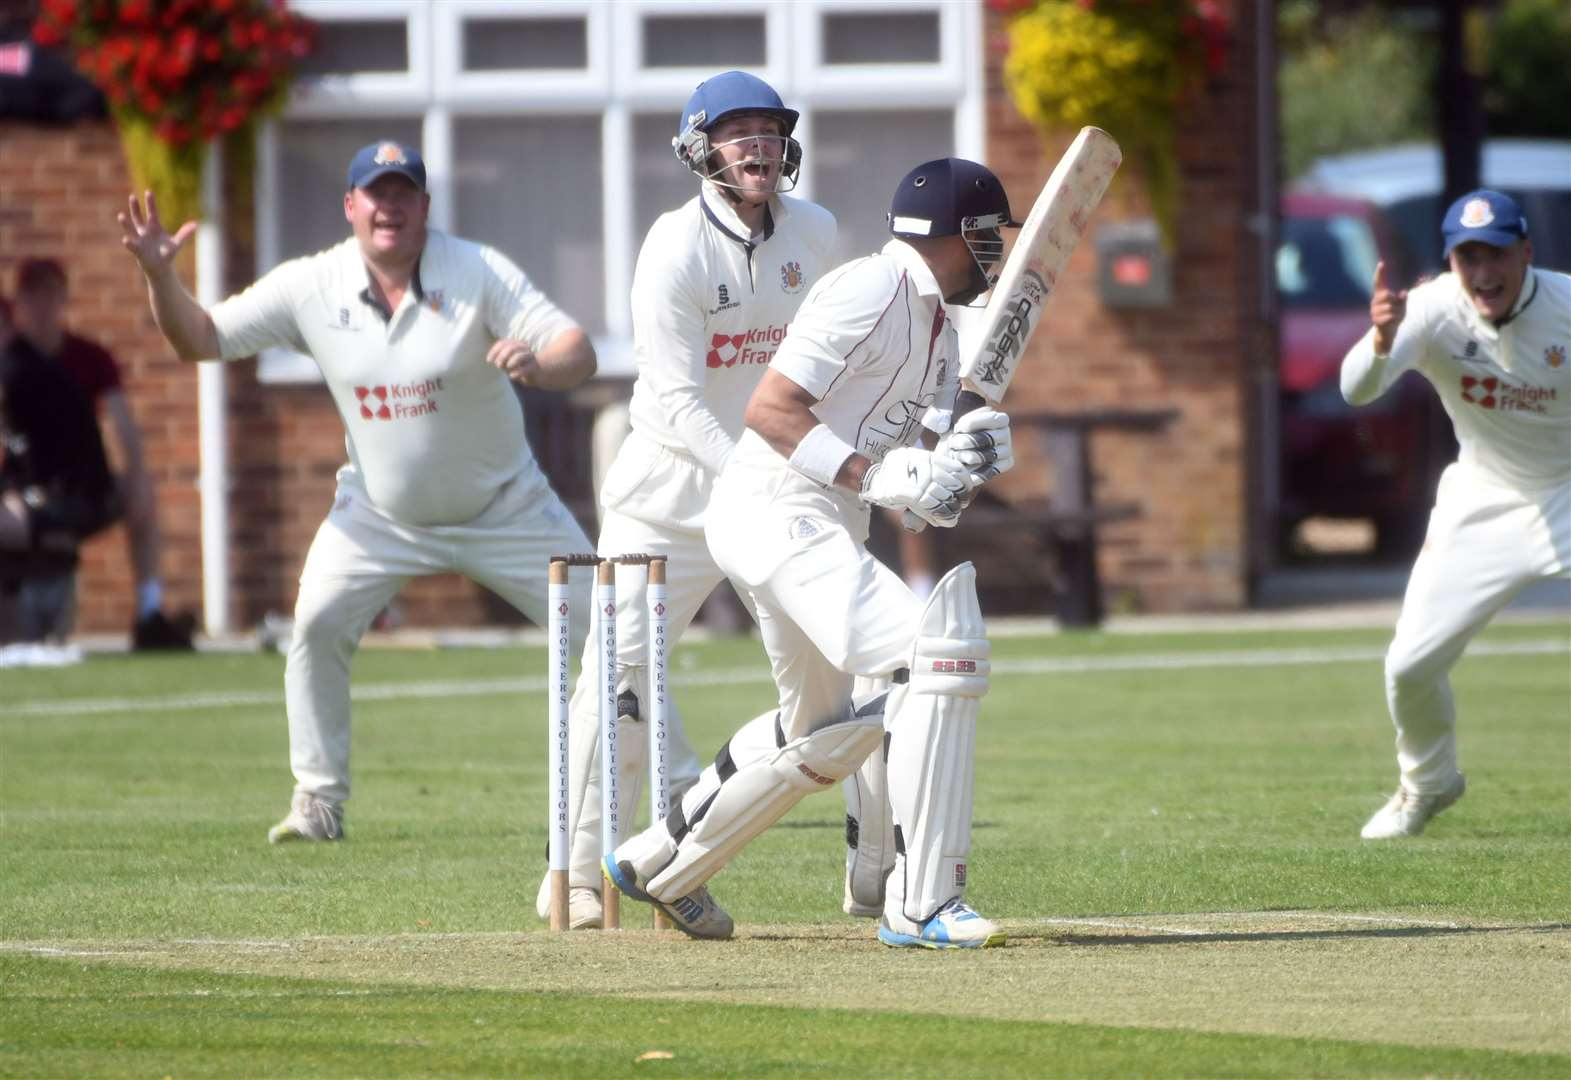 Cricket: Great Scott as Seconds tie match